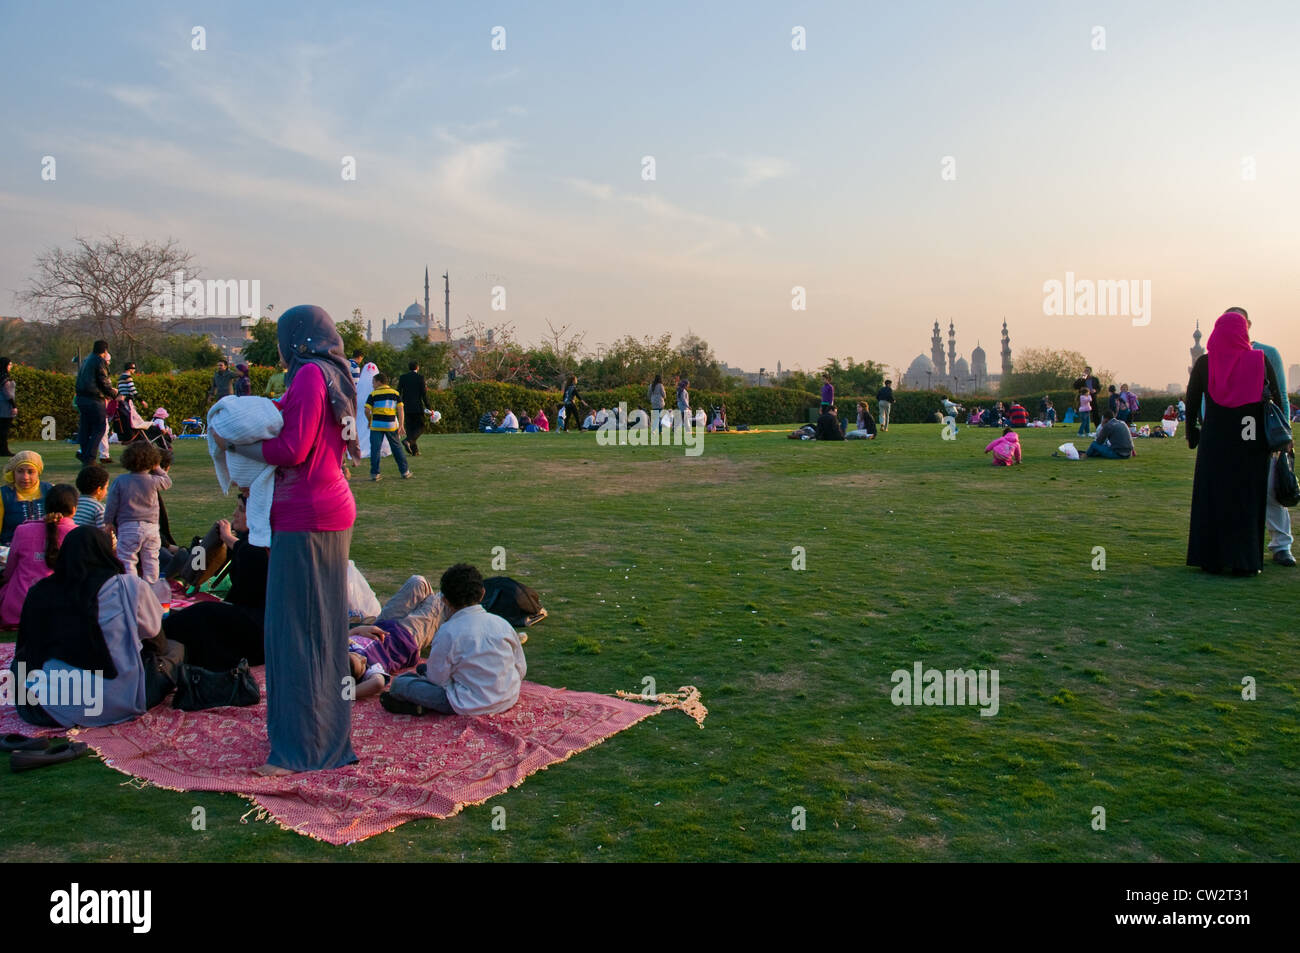 People picnicking Al Azhar Park Cairo - Stock Image